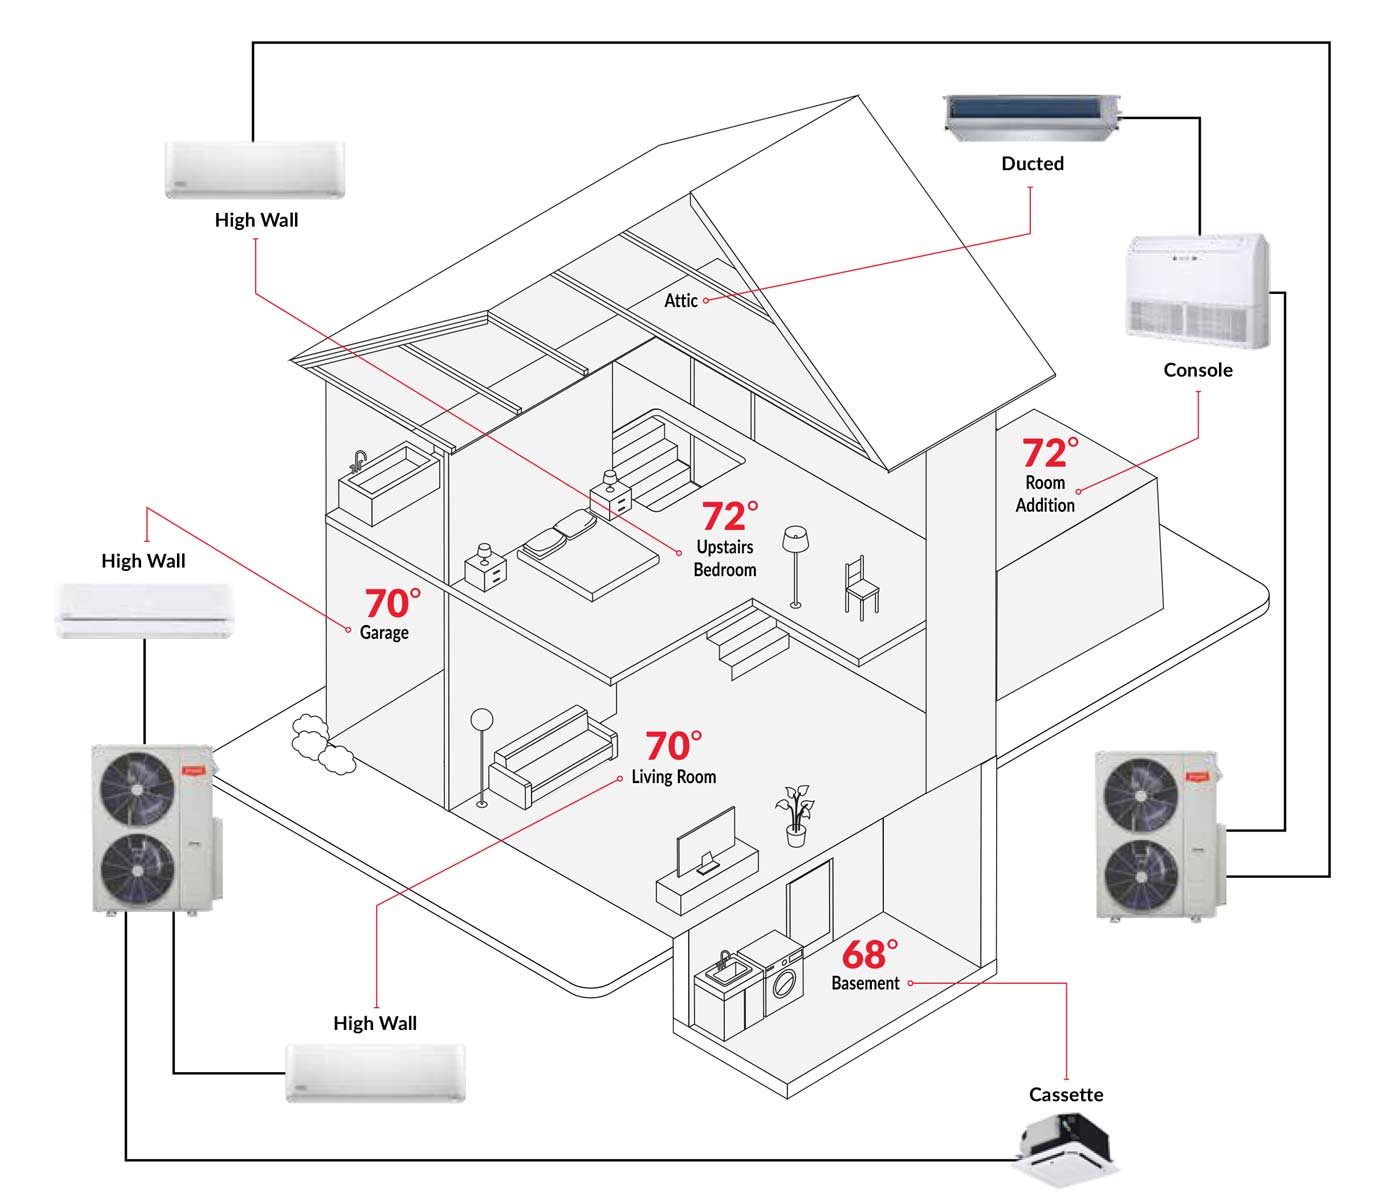 Ductless Heating And Air Conditioning Systems